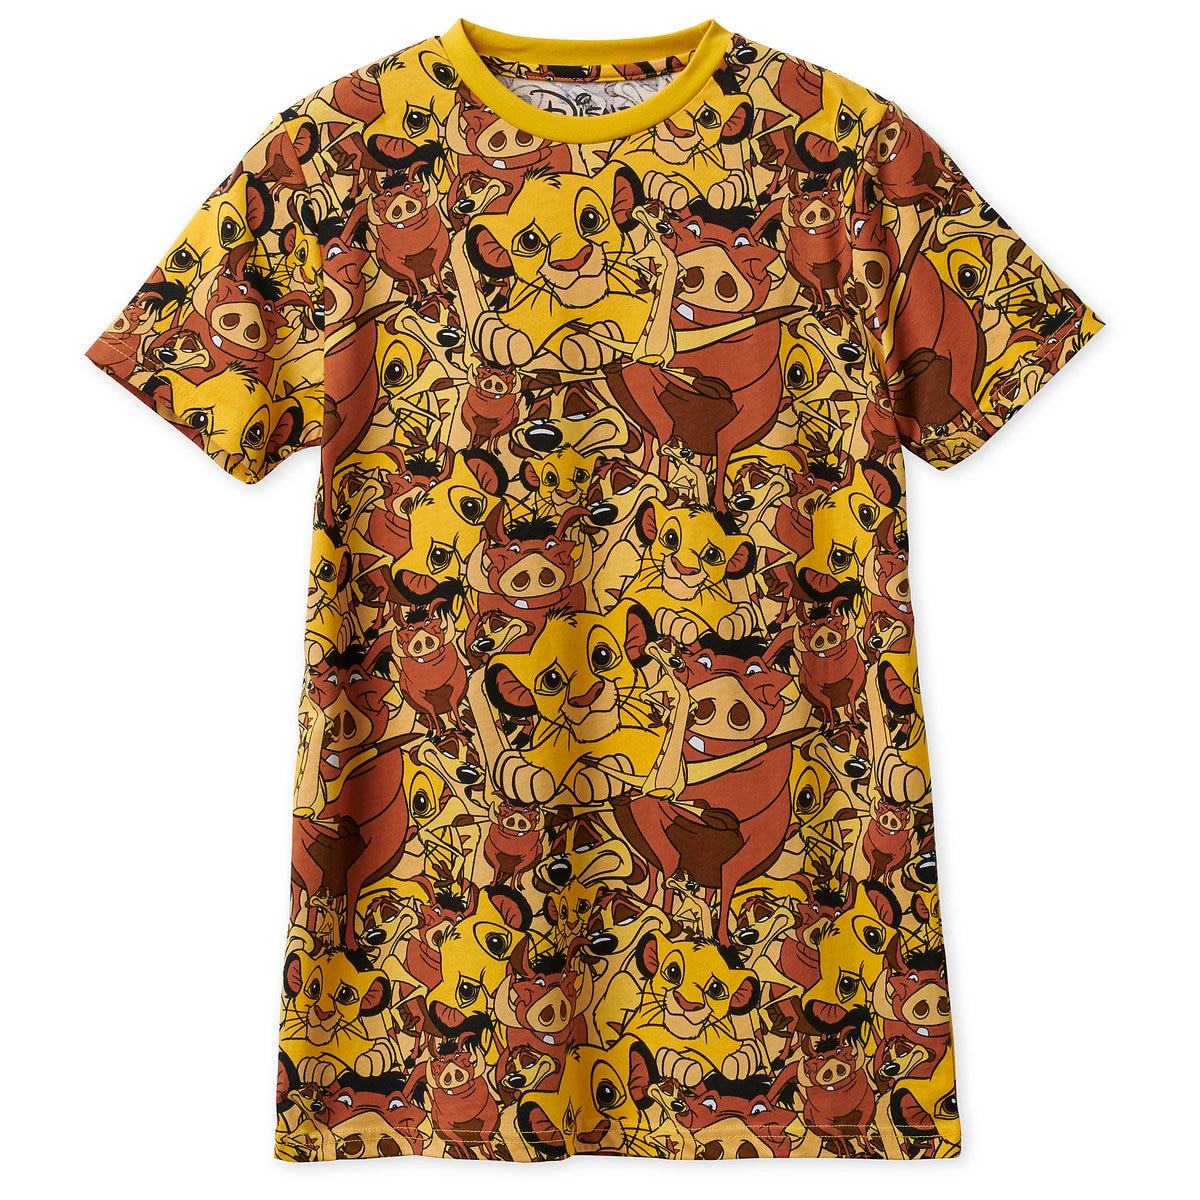 a7cdfcf89 Product Image of The Lion King T-Shirt for Adults by Cakeworthy # 1